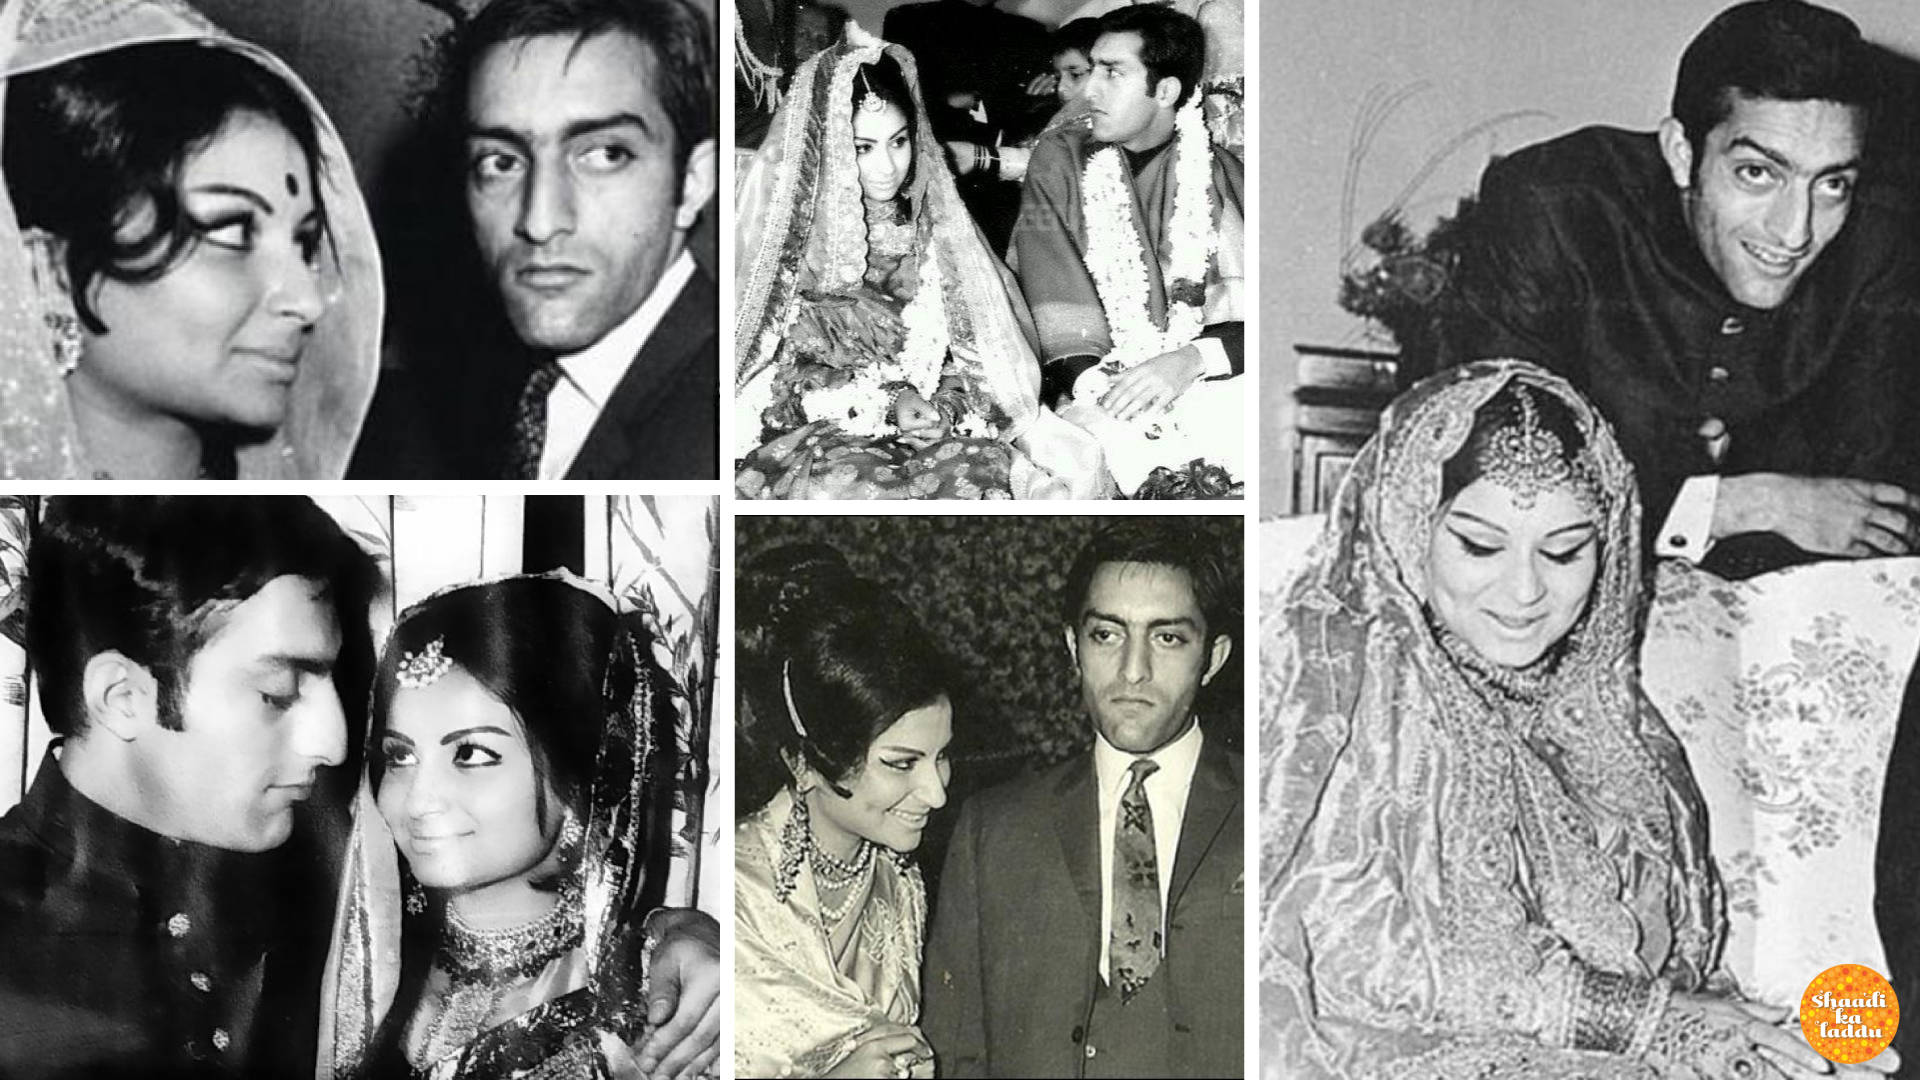 Wedding pictures of Mansoor Ali Khan Pataudi and Sharmila Tagore